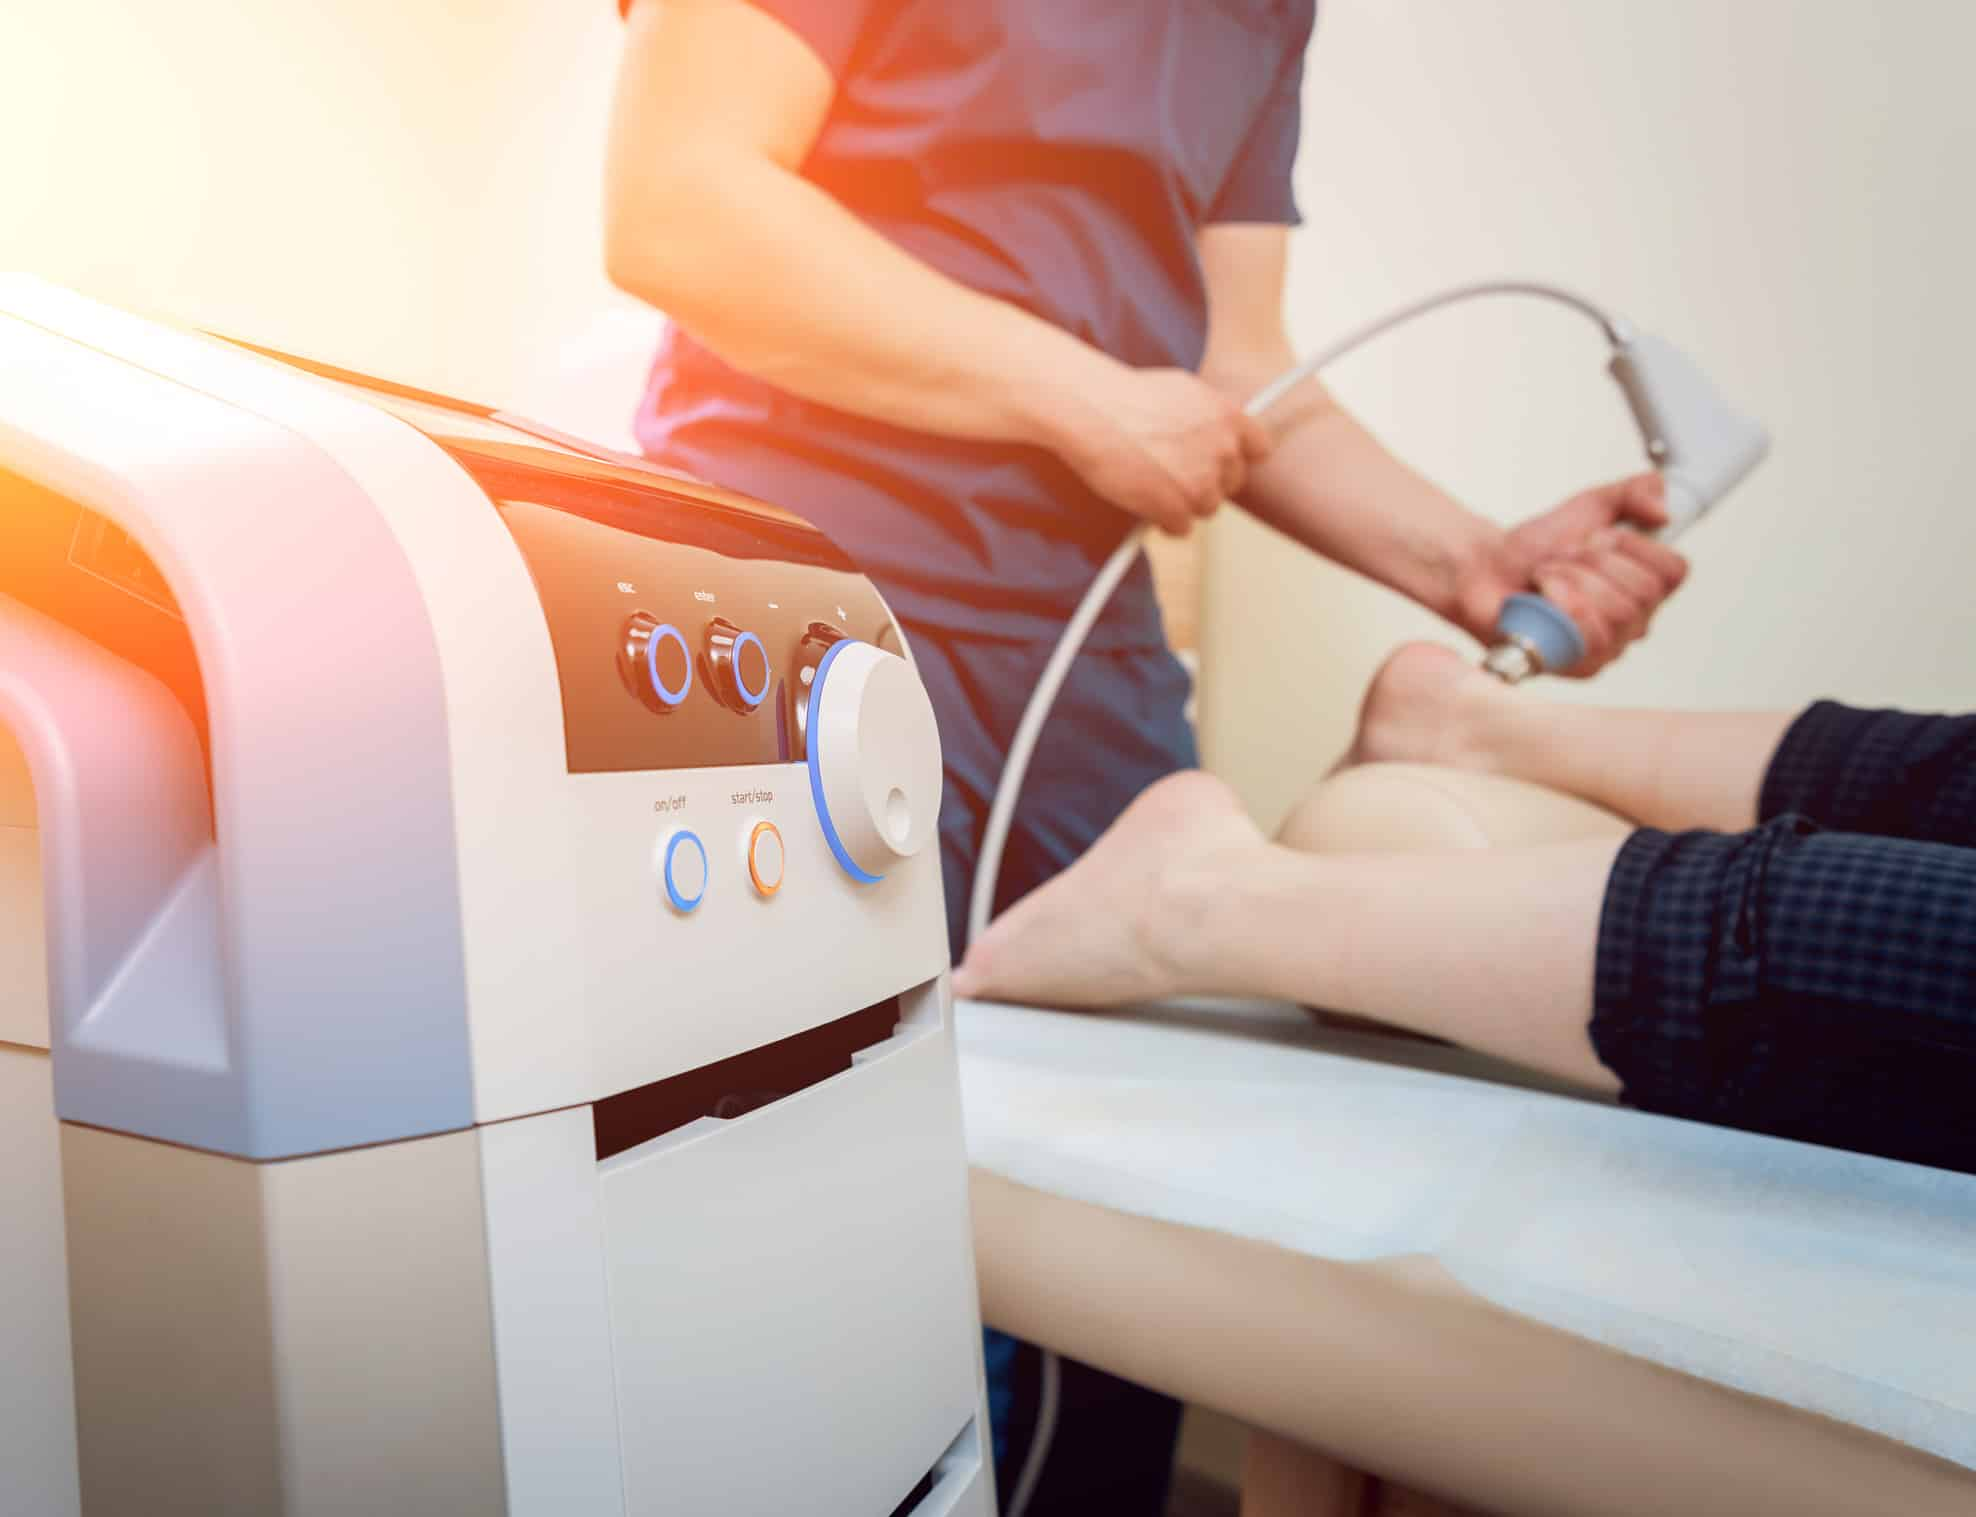 Shock Wave Therapy & Scar Tissue Elasticity